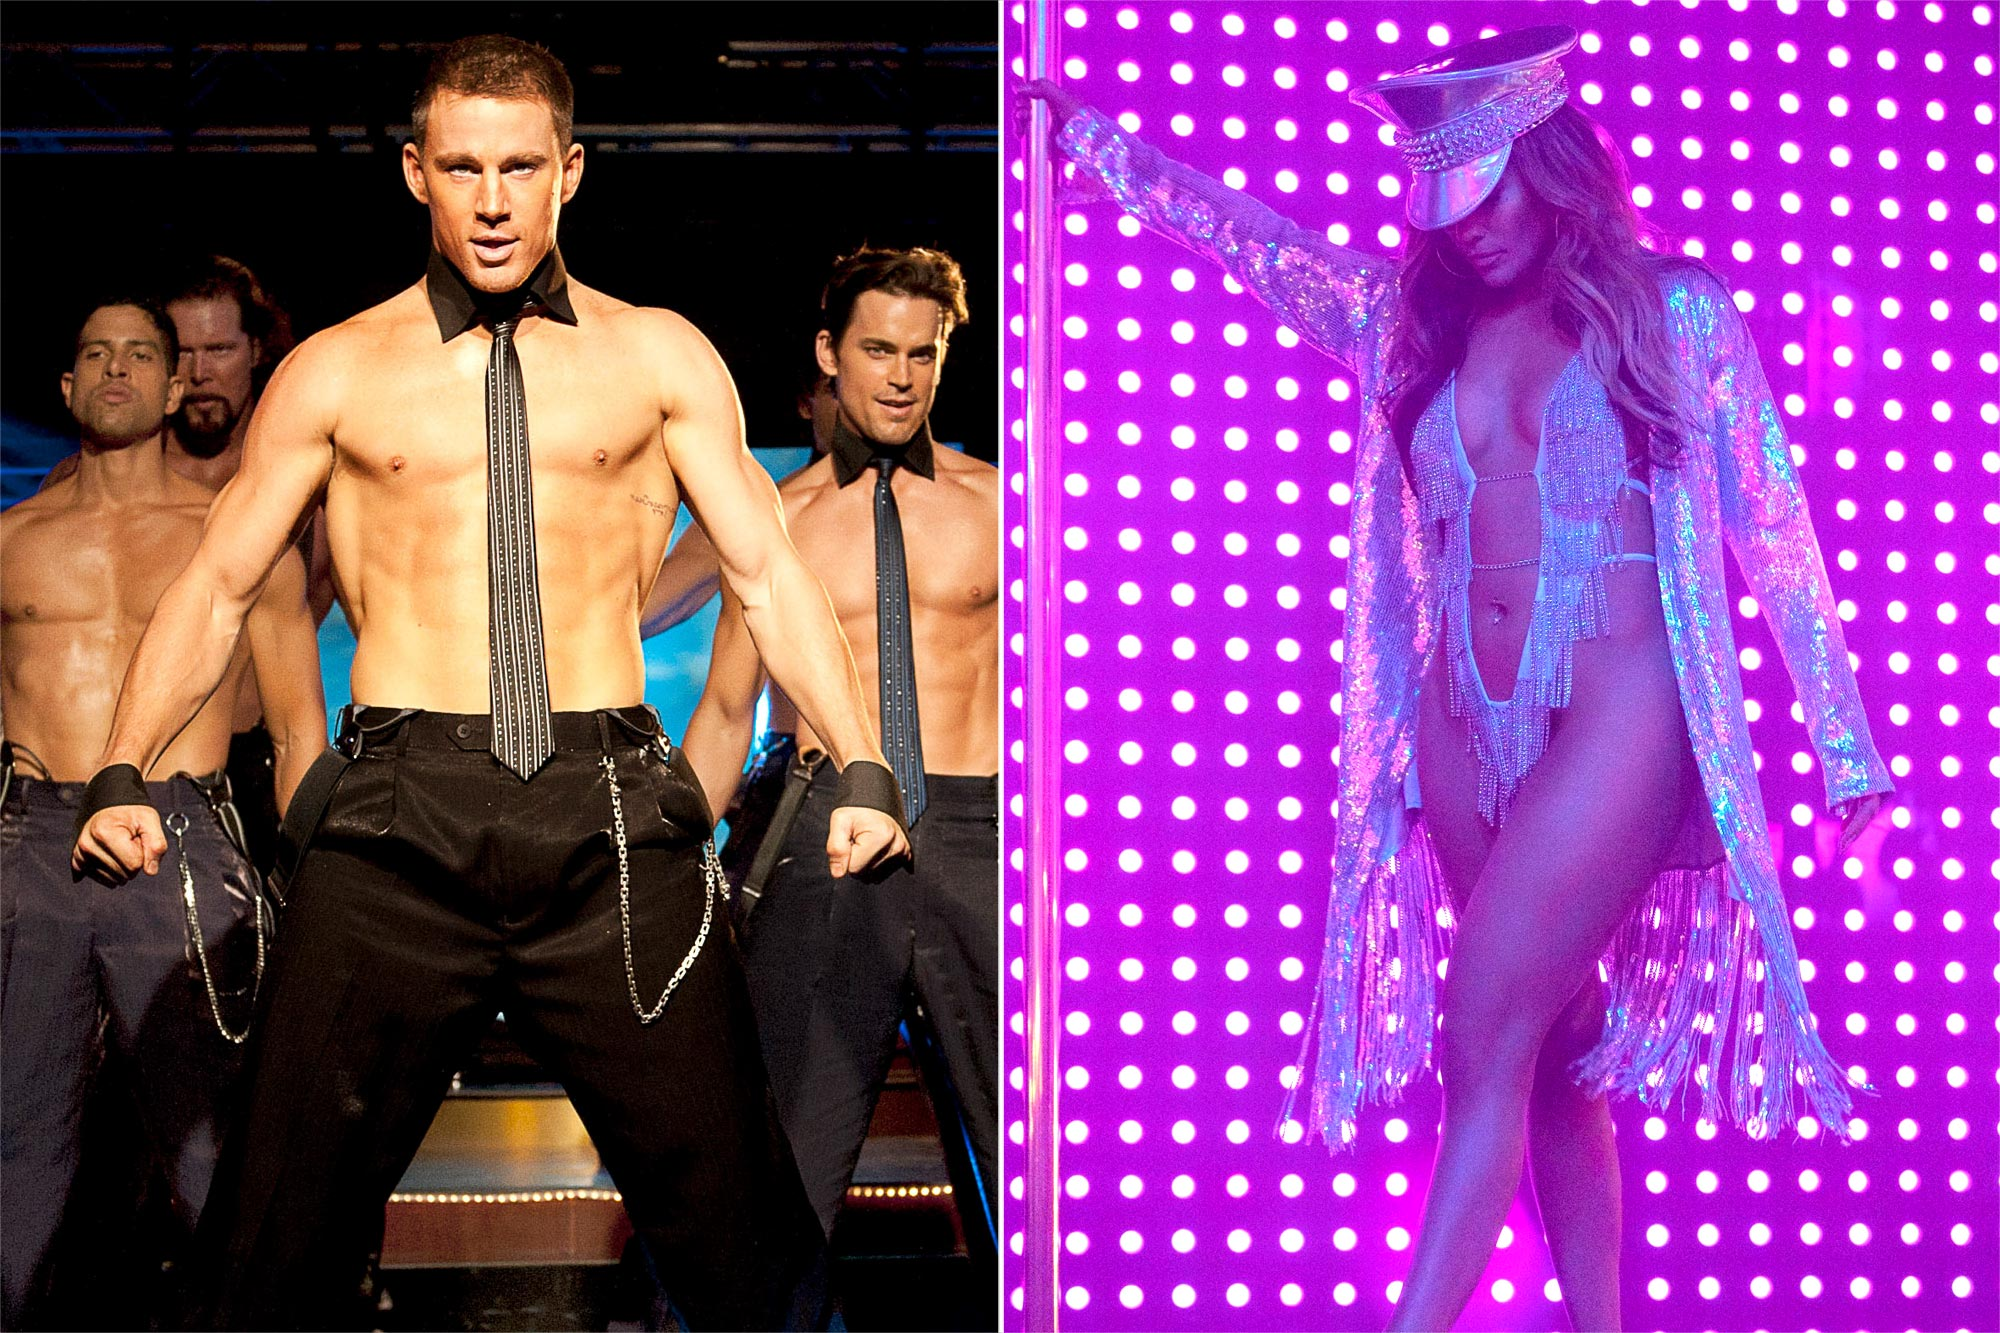 Stars who played strippers